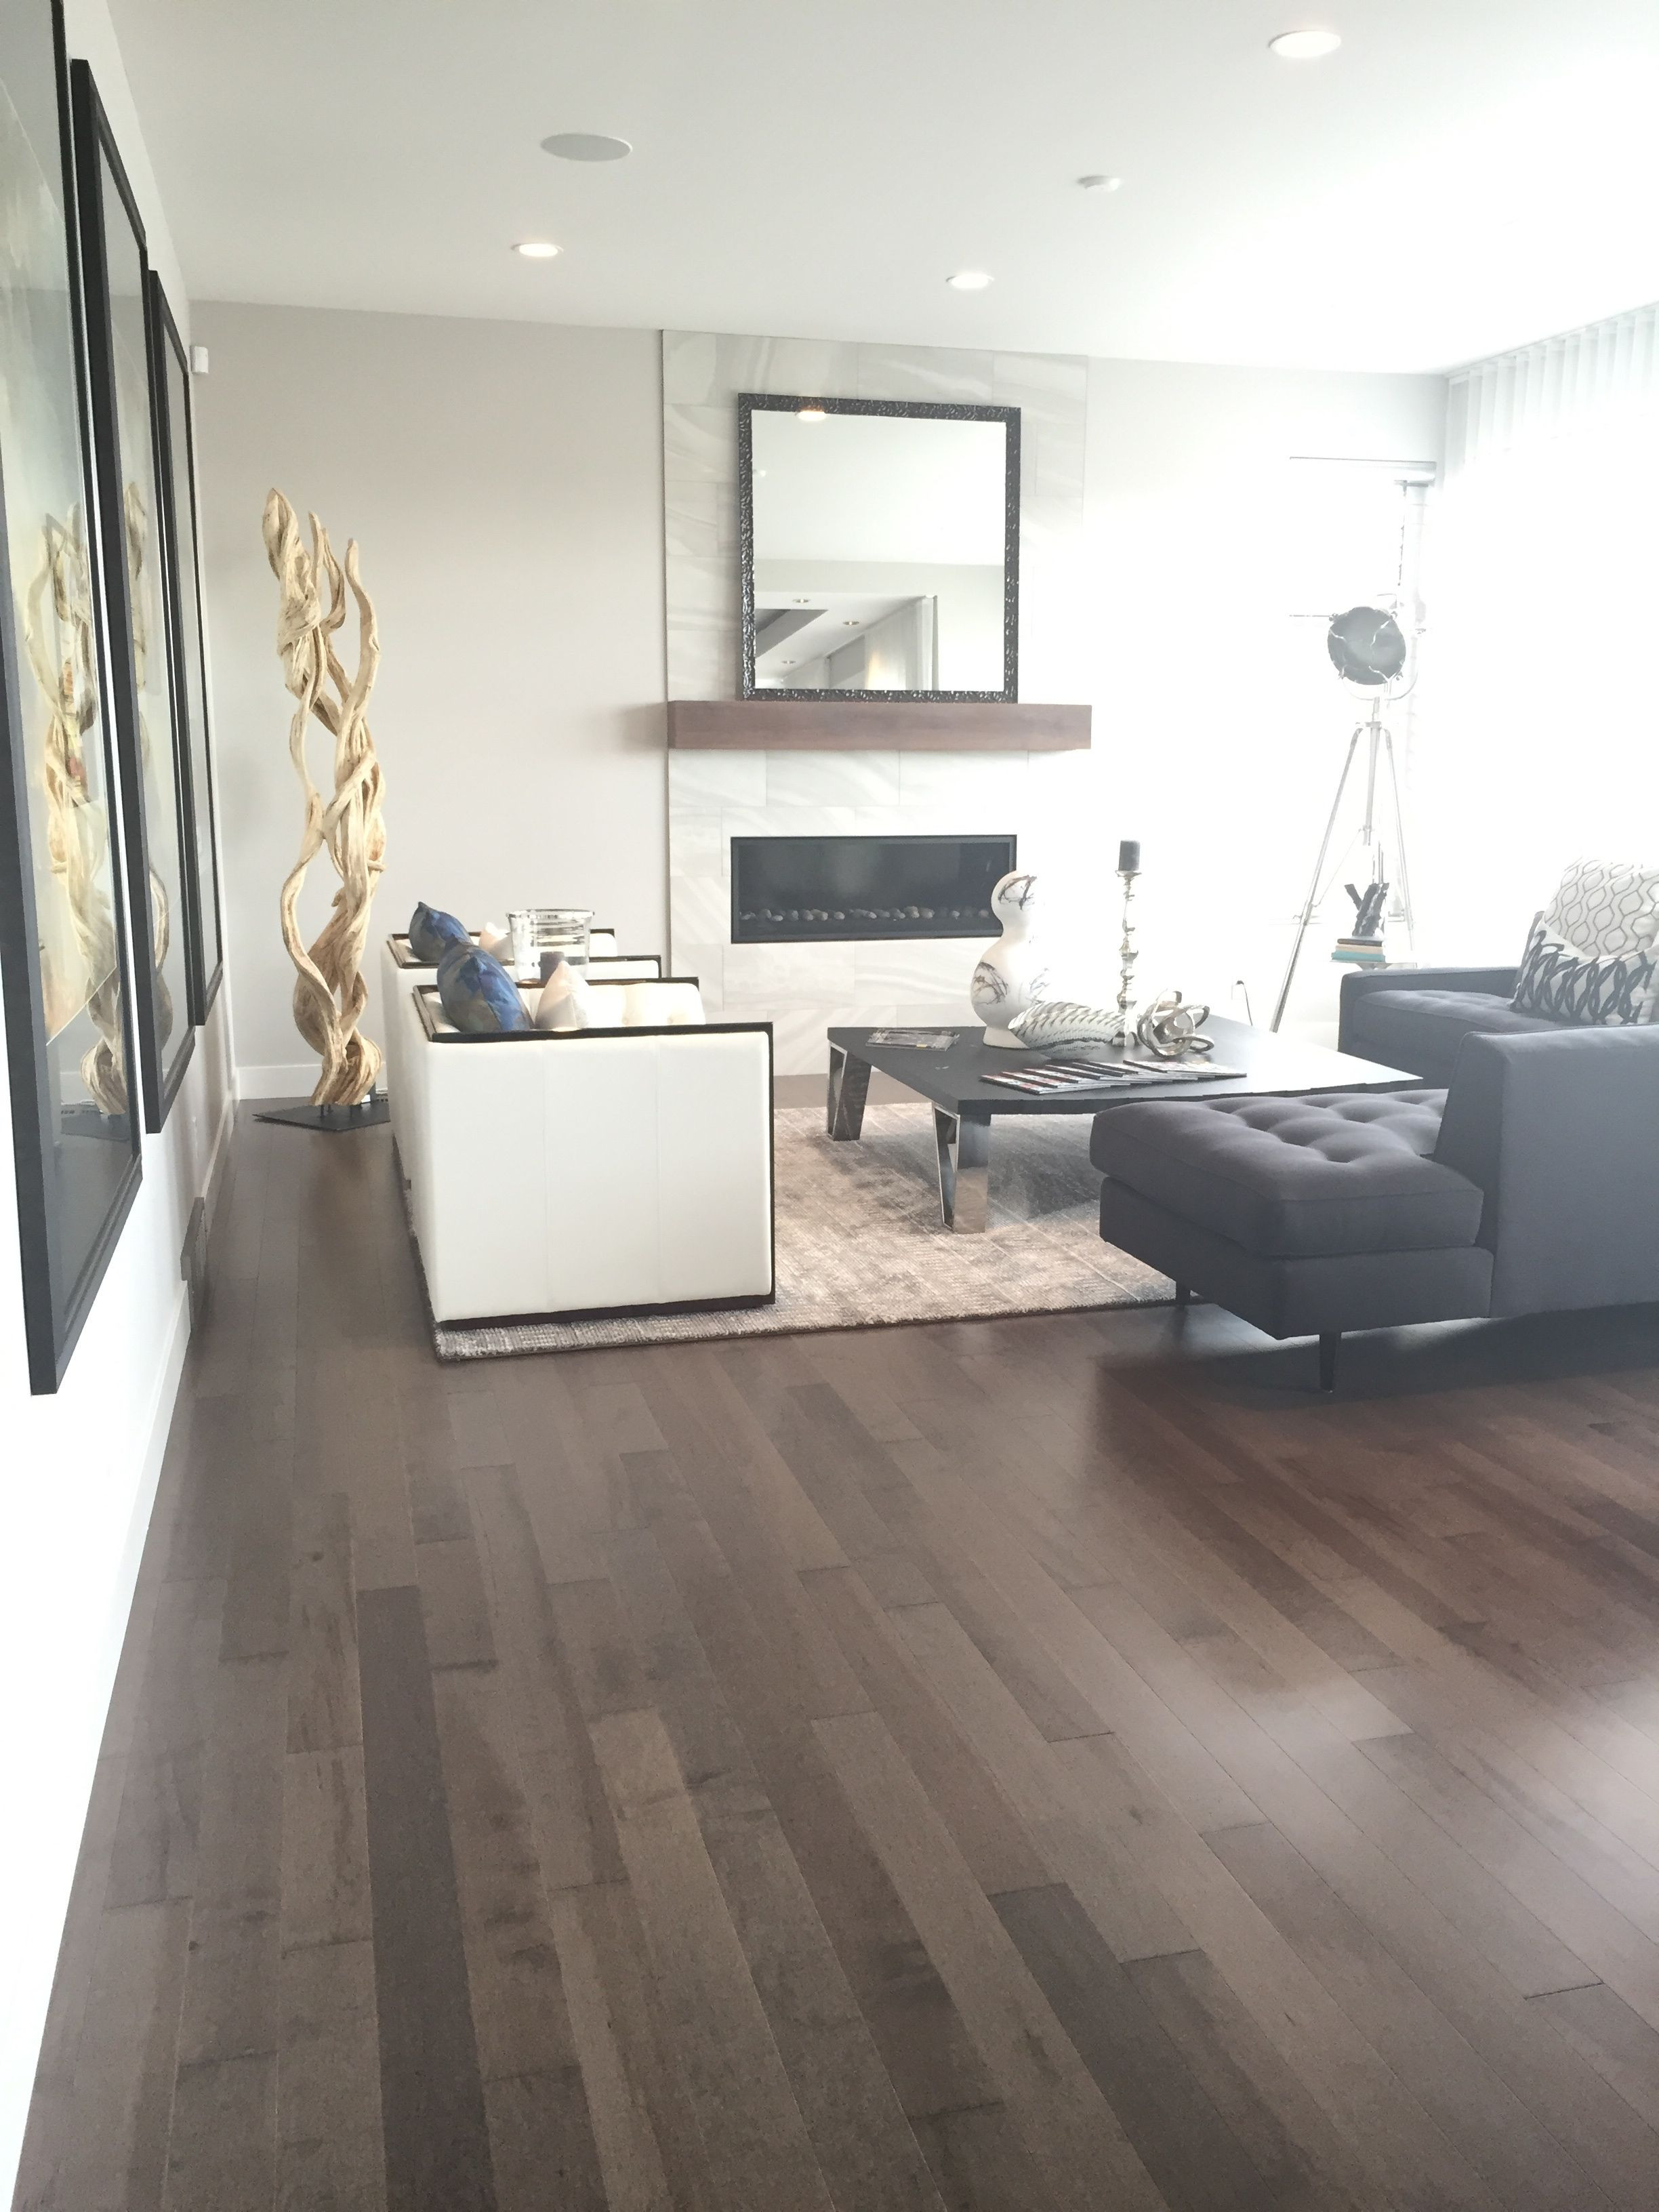 hardwood flooring reno of smoky grey essential hard maple tradition lauzon hardwood pertaining to beautiful living room from the cantata showhome featuring lauzons smokey grey hard maple hardwood flooring from the essential collection